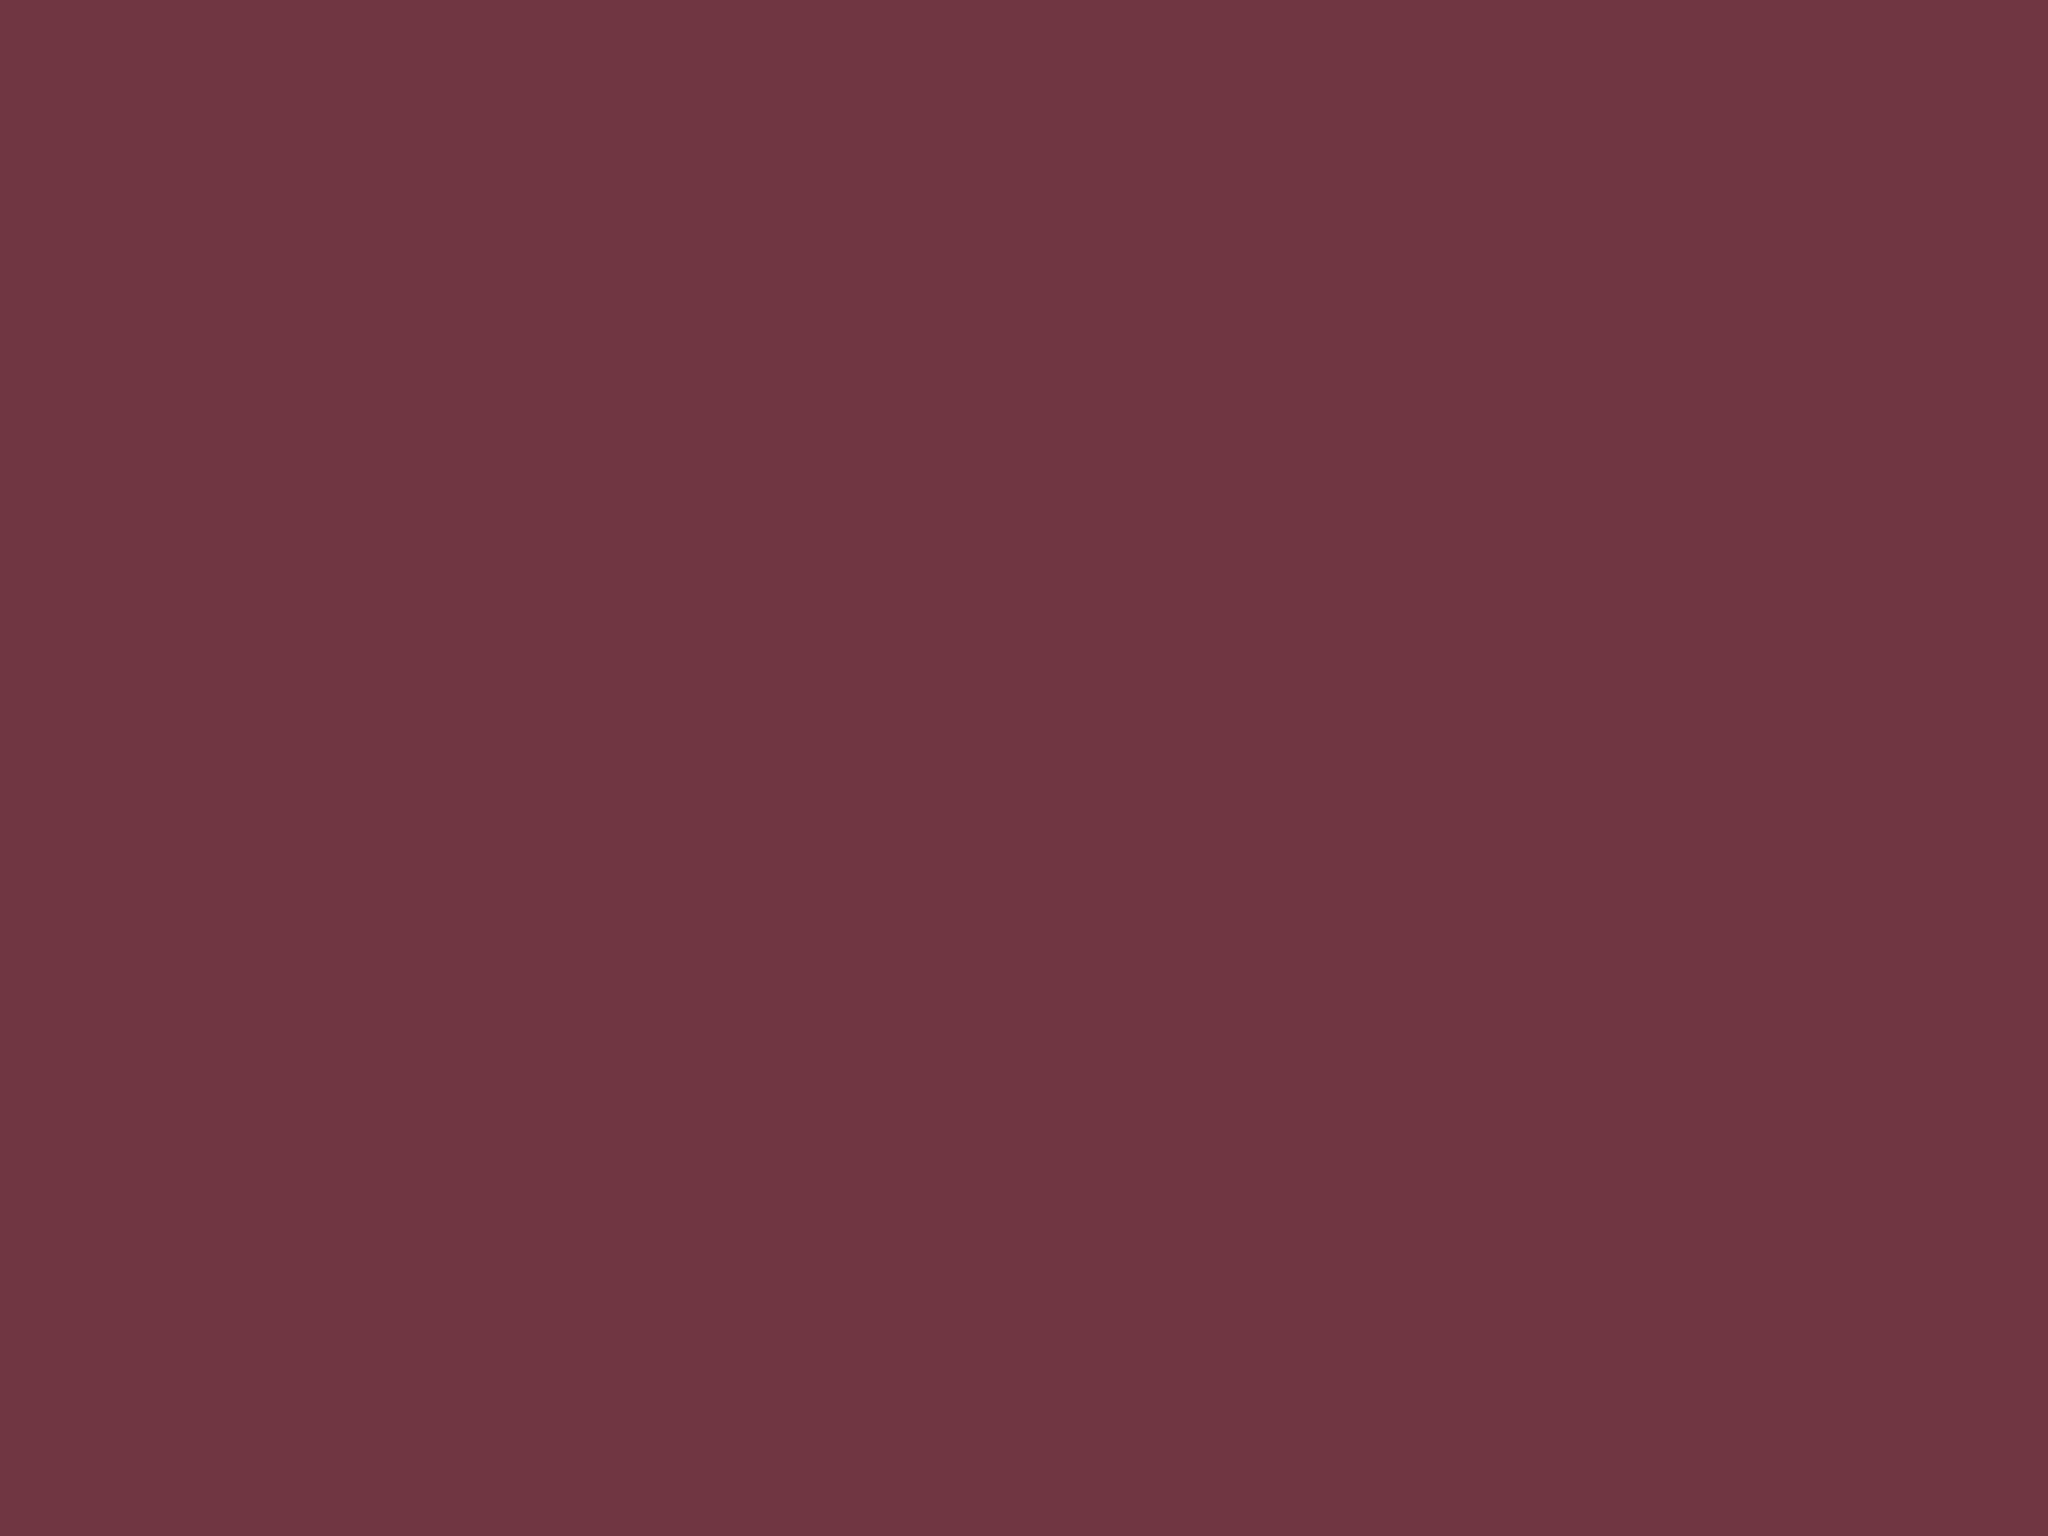 2048x1536 Catawba Solid Color Background